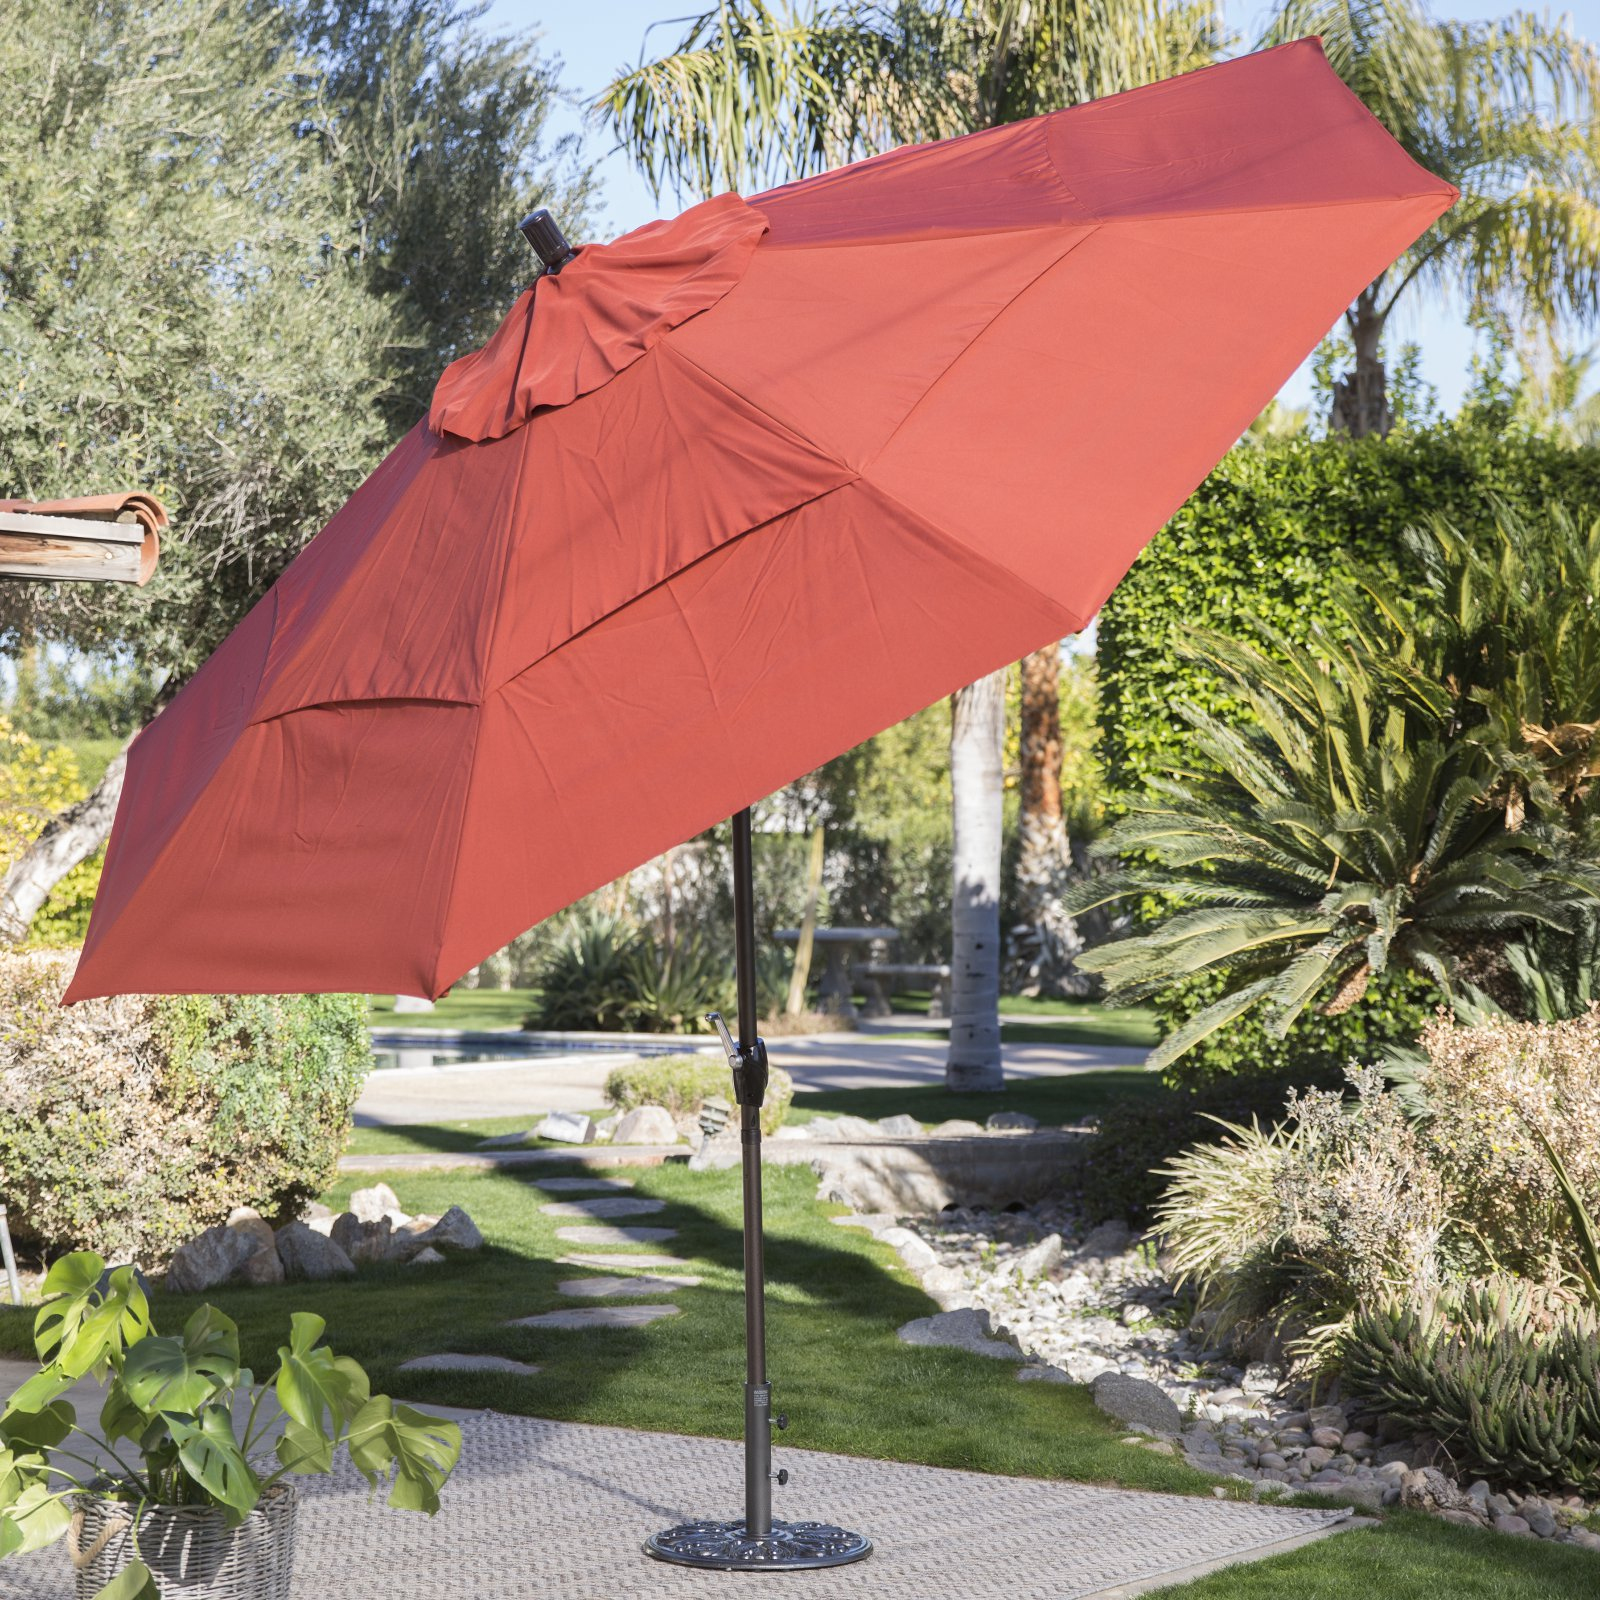 Coral Coast 11-ft. Spun Polyester Patio Umbrella with Push Button Tilt by